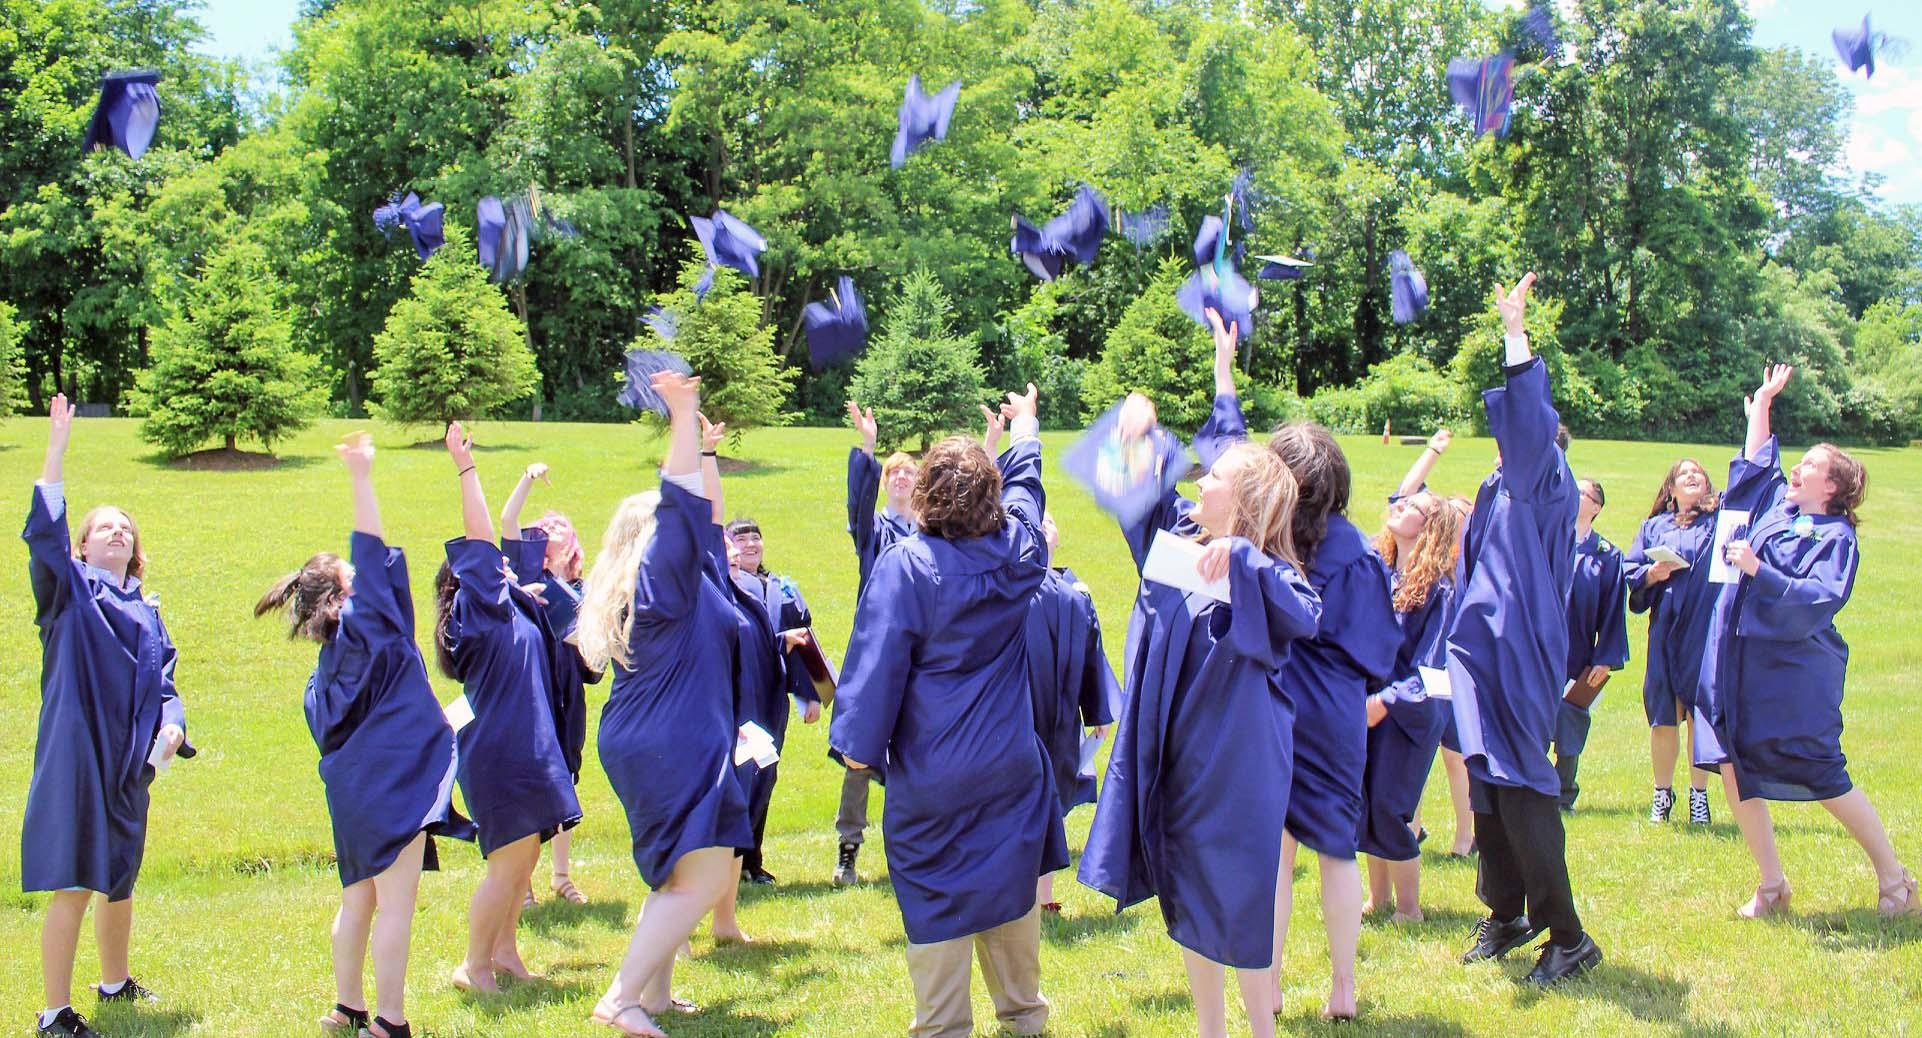 A large group of Hunterdon Prep students in their graduation gowns throwing their caps into the air after the graduation ceremony.